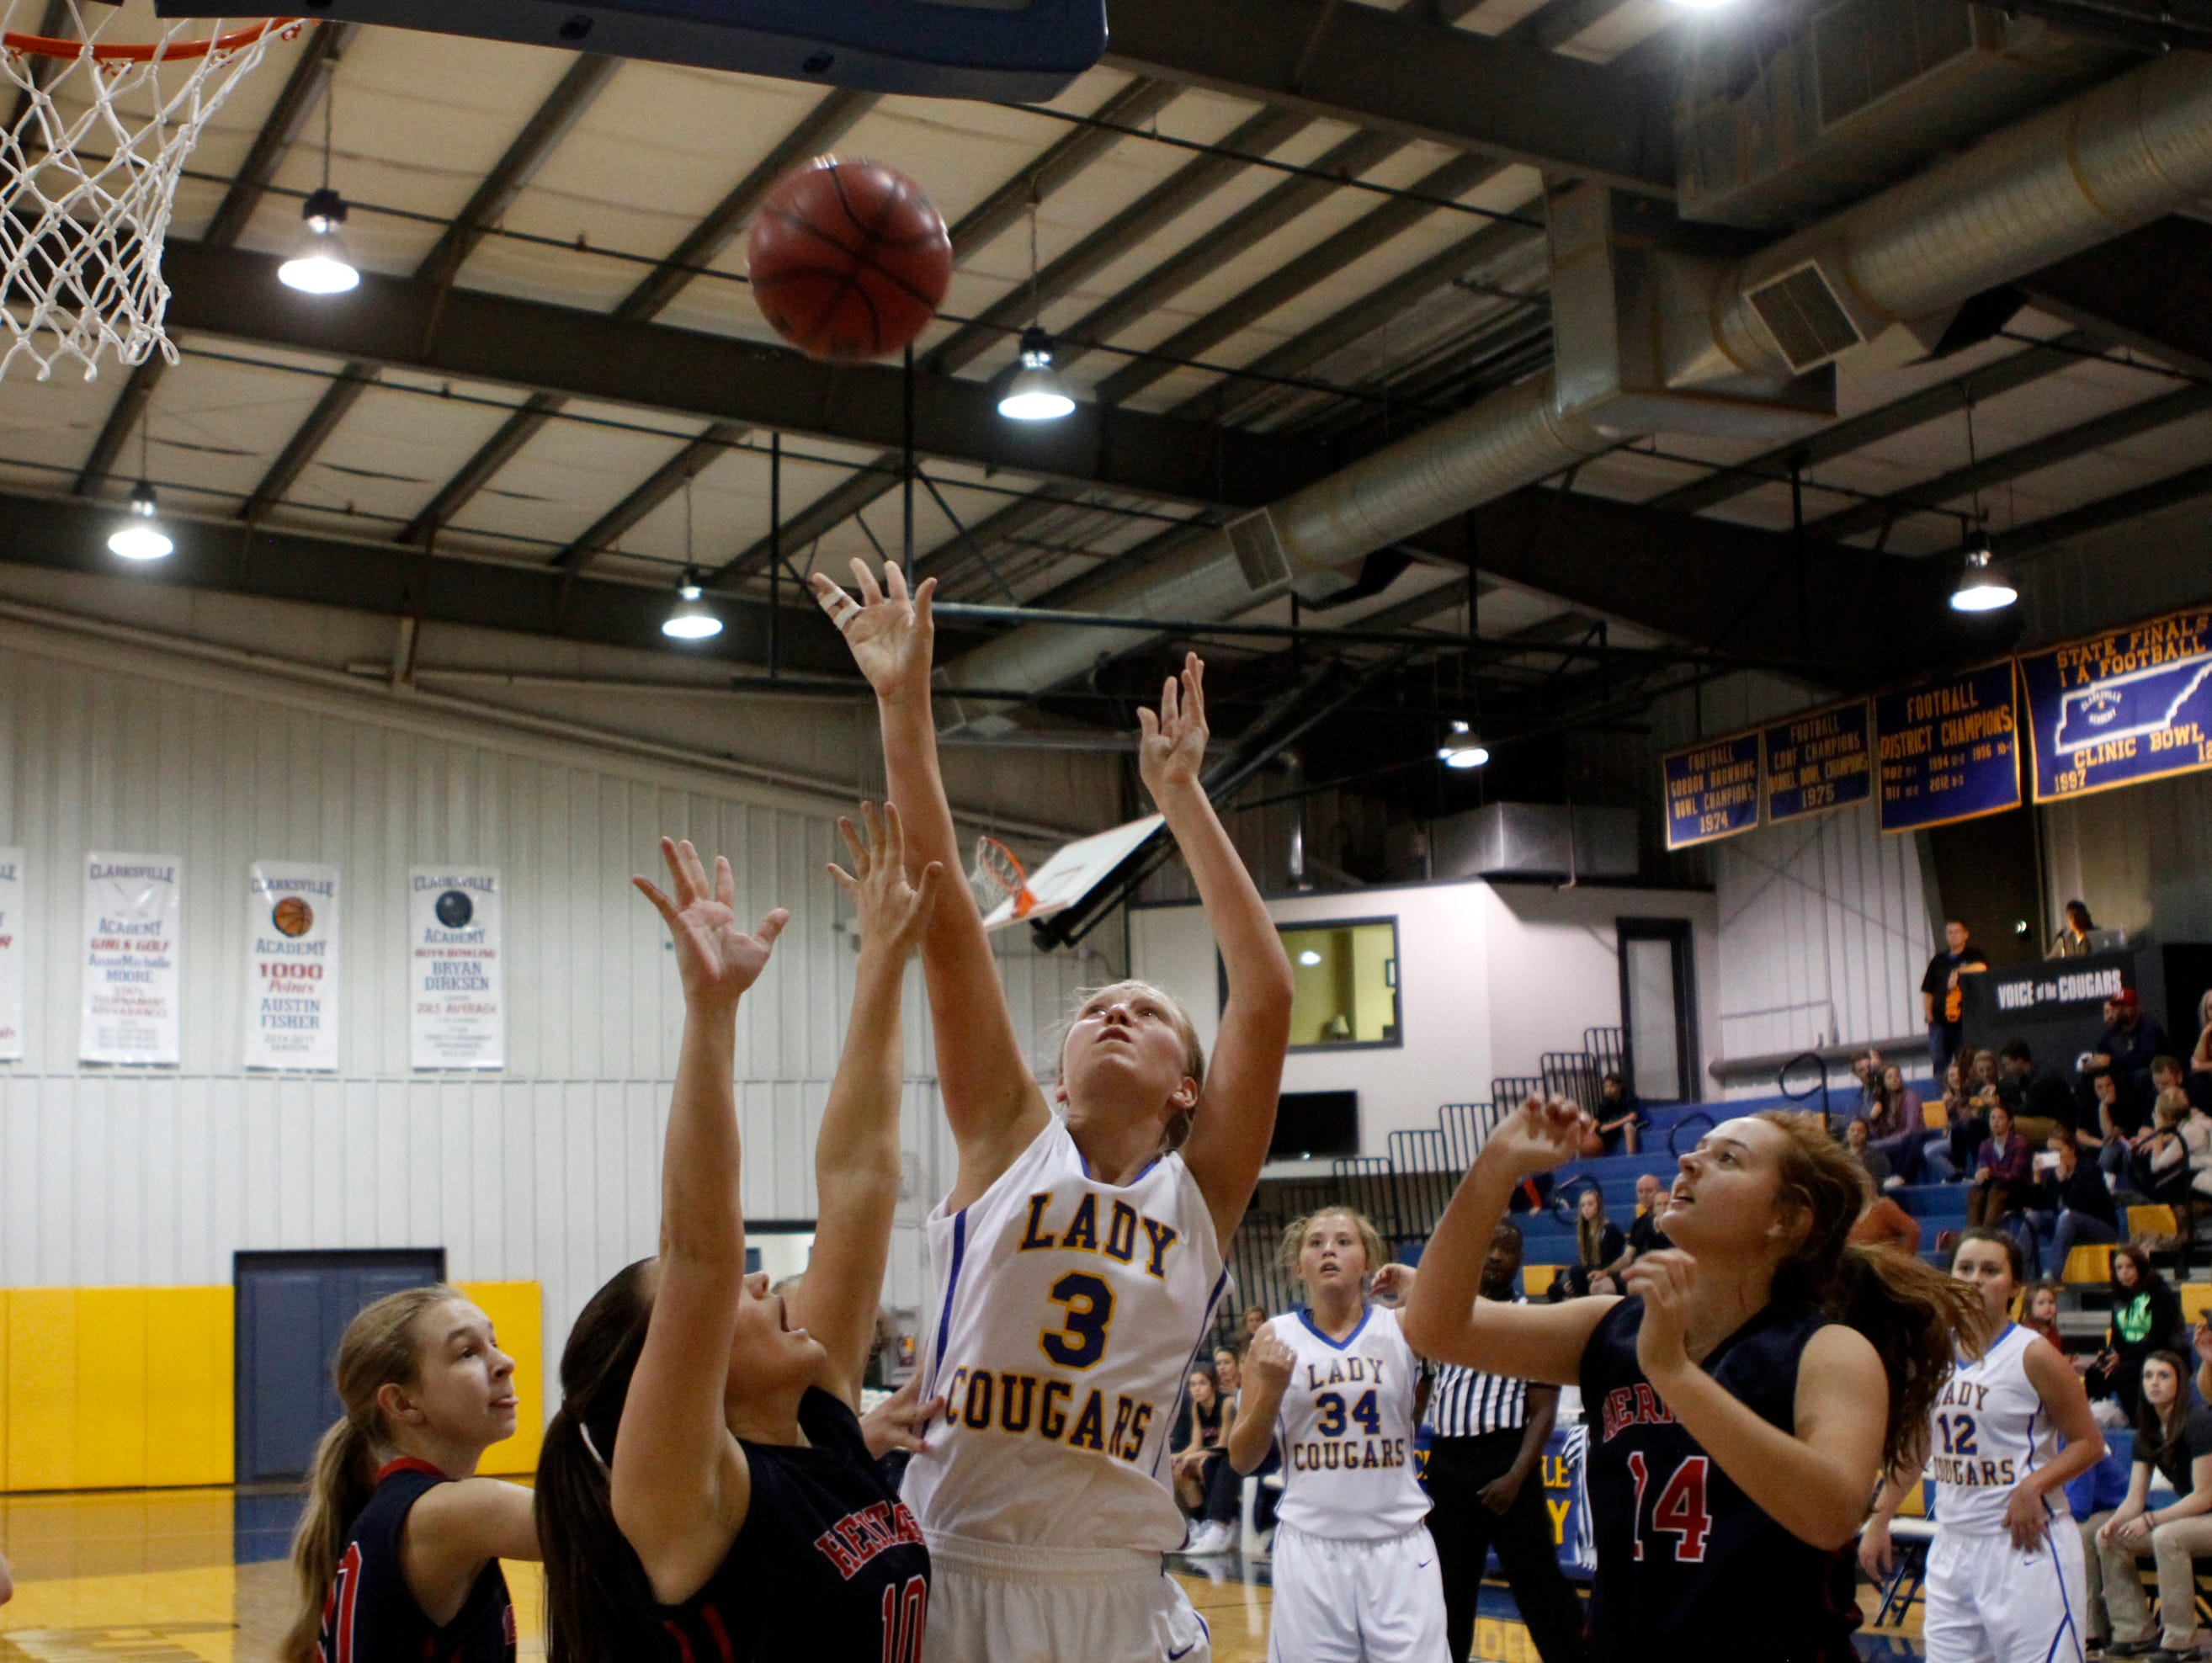 Clarksville Academy's Bailey Foote (3) was held to four points on the night as Clarksville Academy fell to White House-Heritage in a Hall of Fame game Thursday.